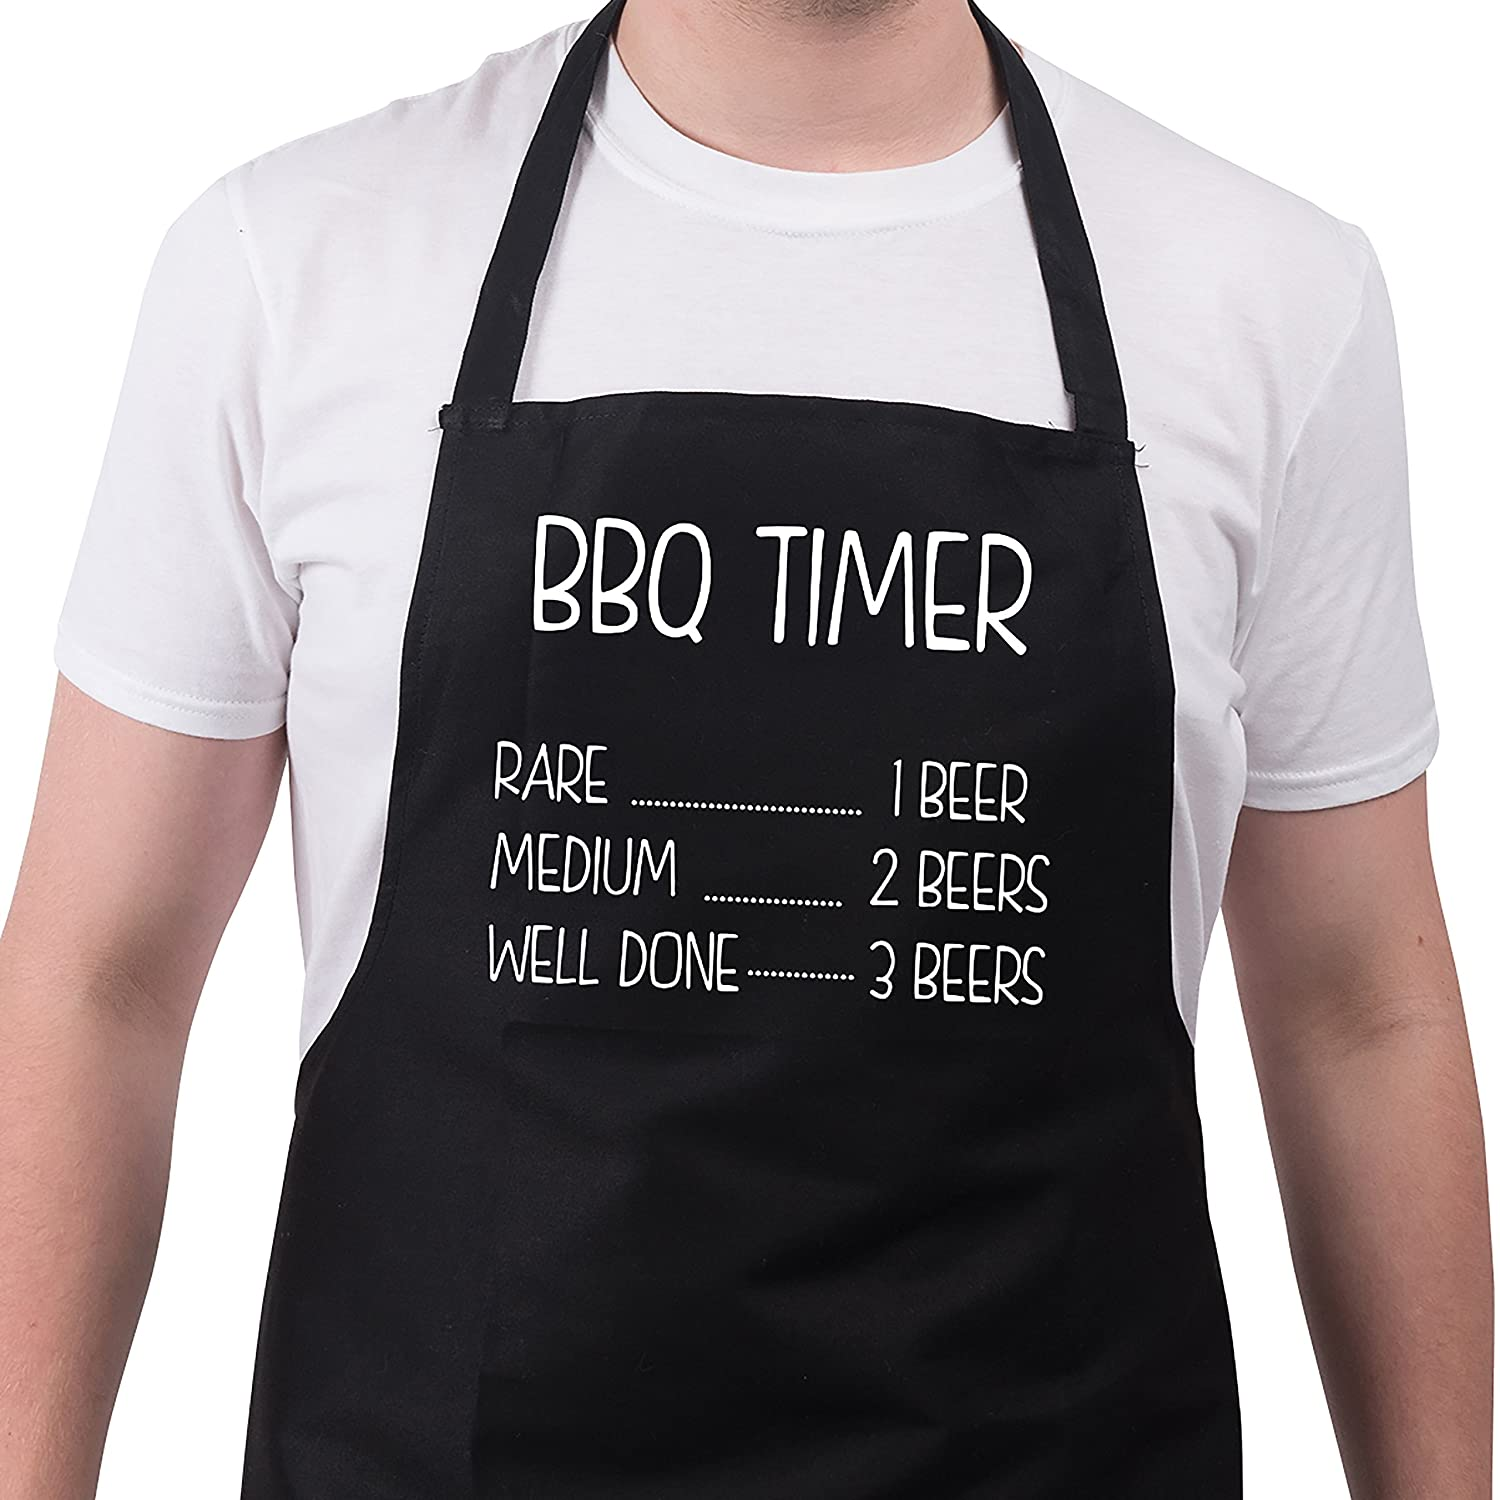 Bang Tidy Clothing Funny BBQ Apron Novelty Aprons Cooking Gifts for Men BBQ Timer Black One Size FD4835P1